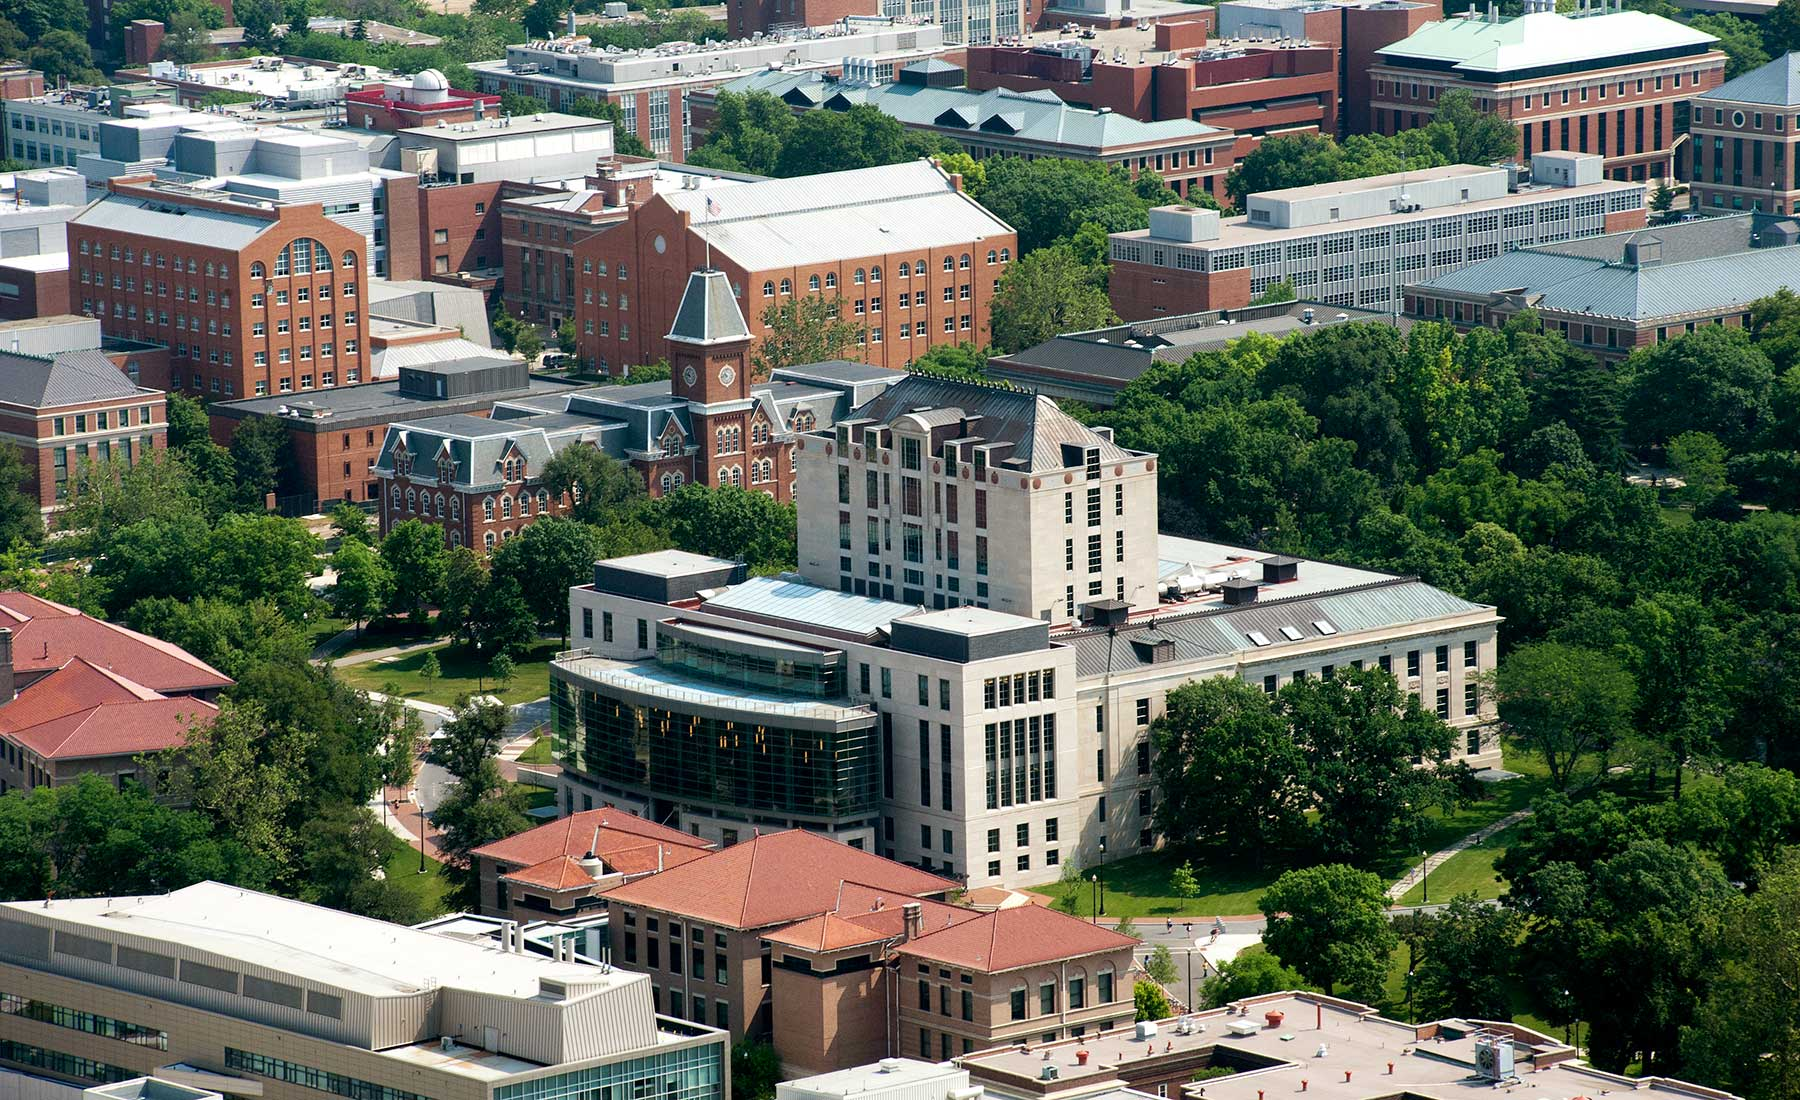 aerial view of Thompson Library